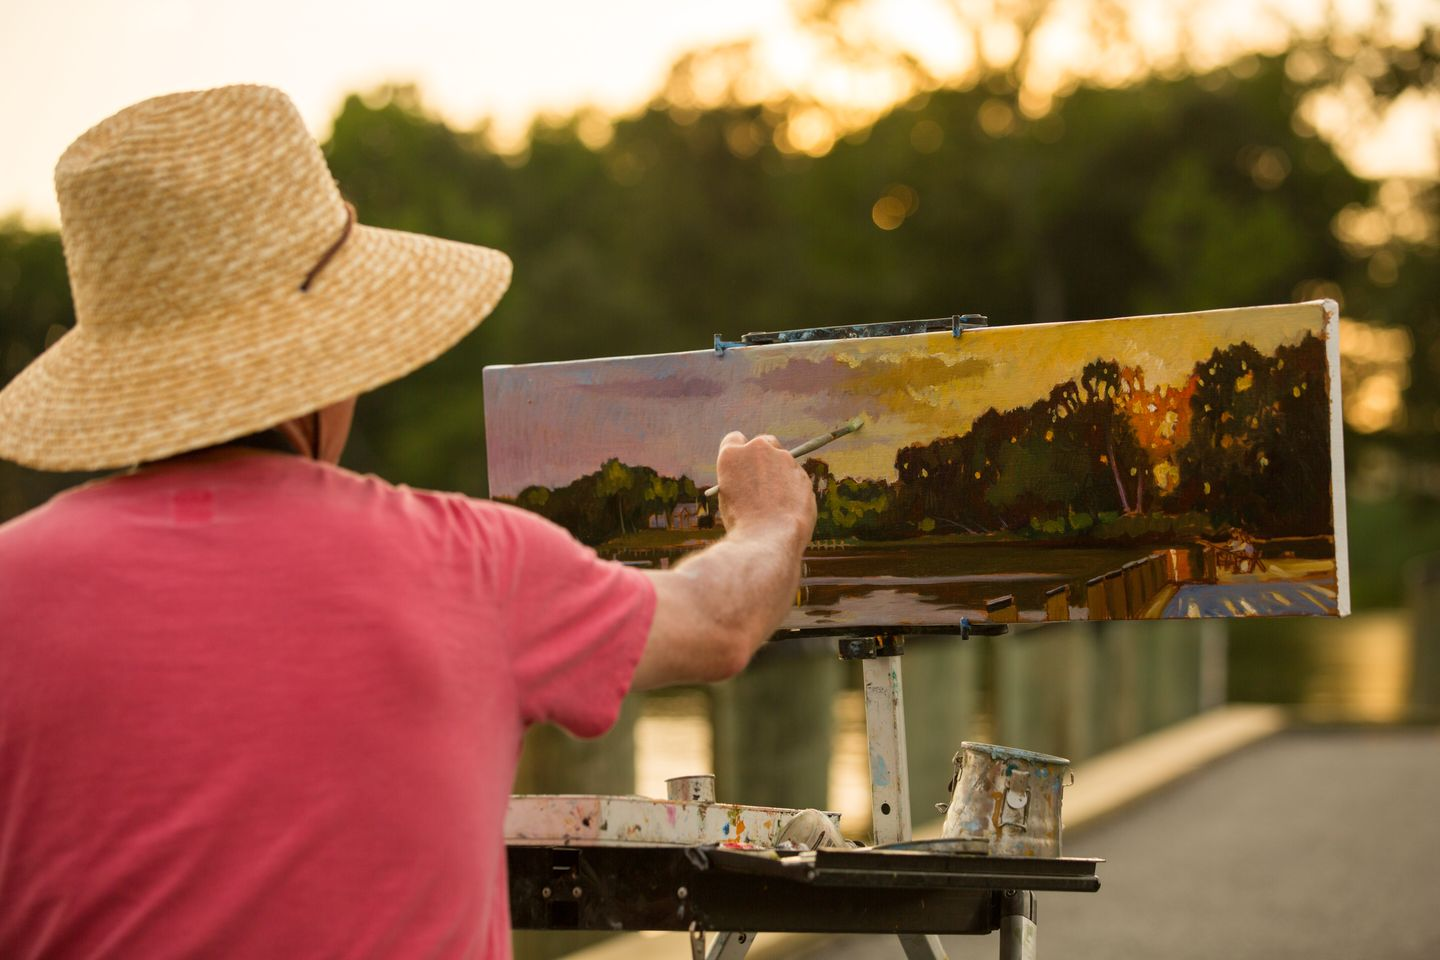 Man painting outside during sunset